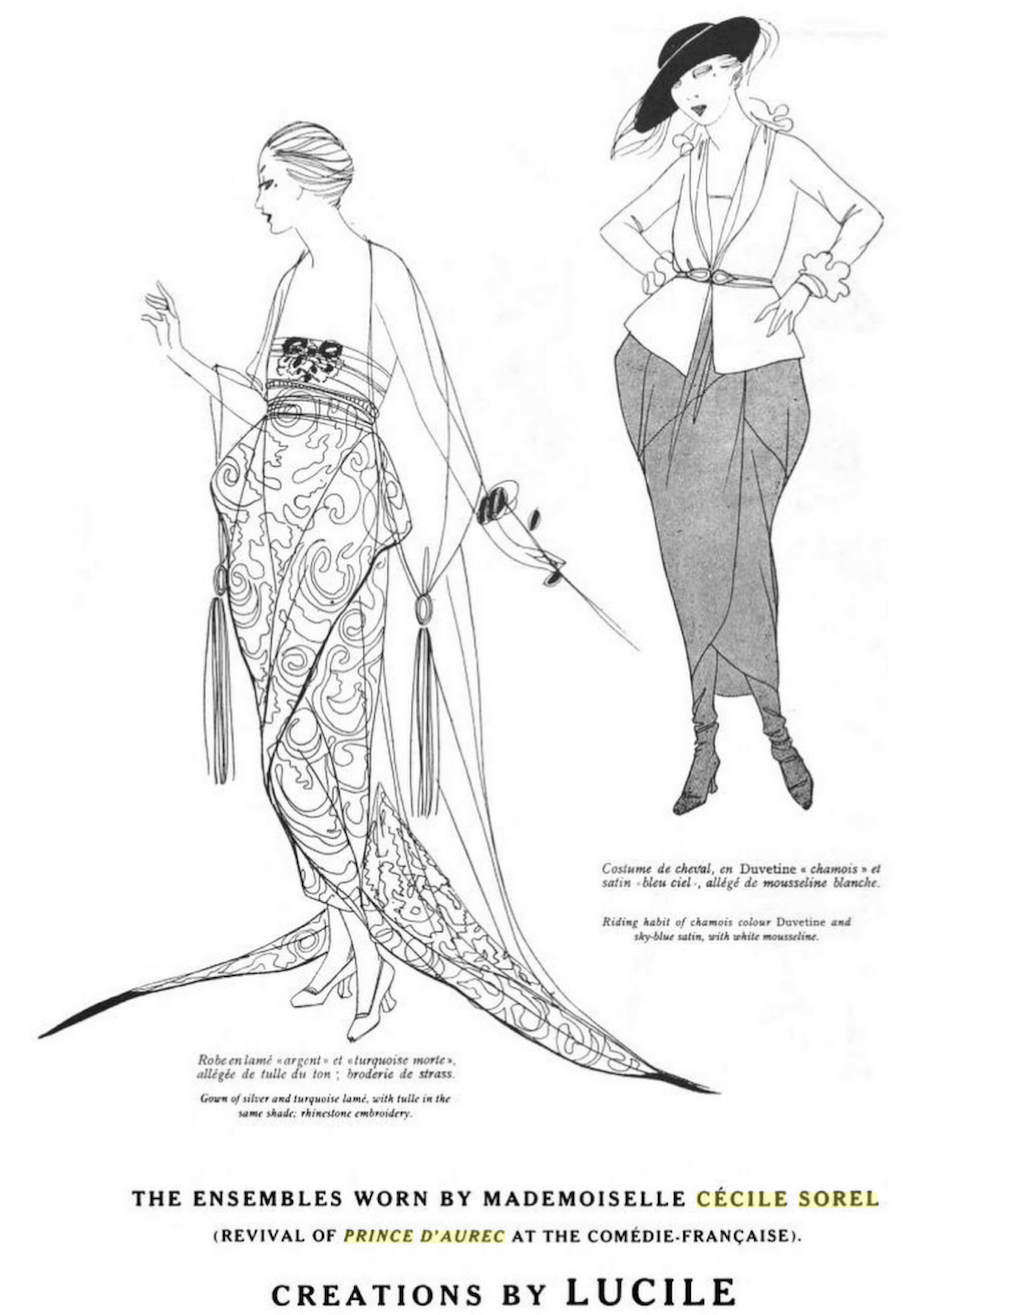 1920 (17 January issue date) Ensembles worn by Cécile